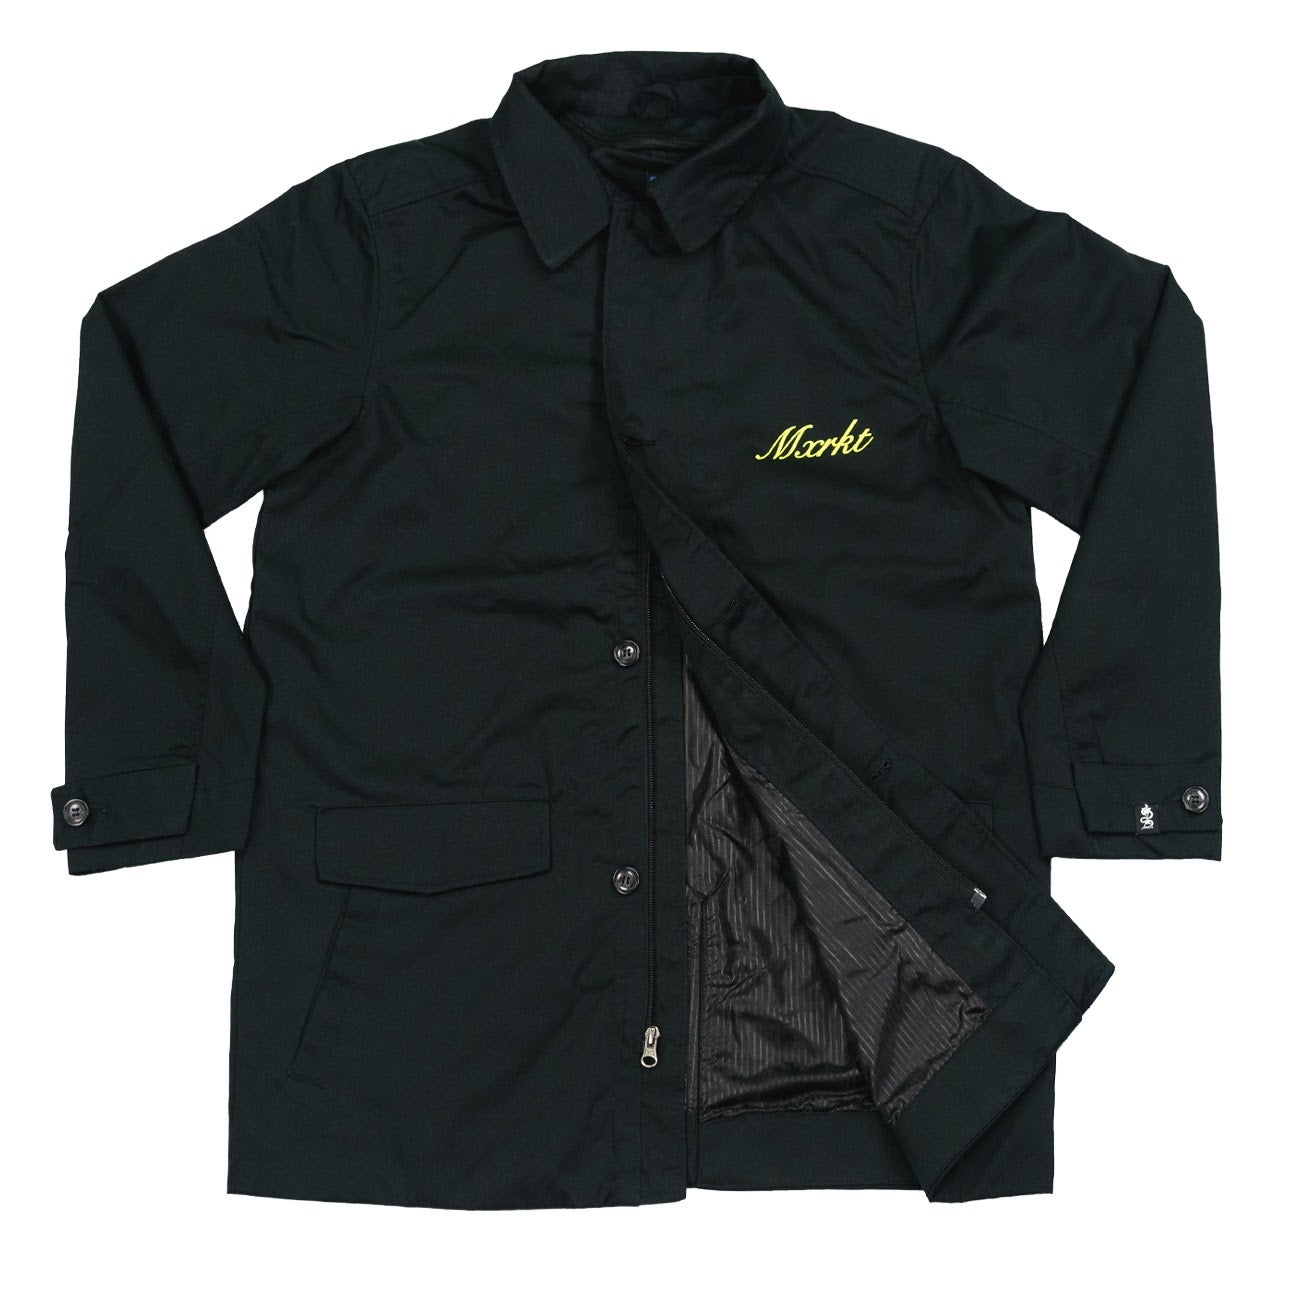 Image of Paisley harbor jacket